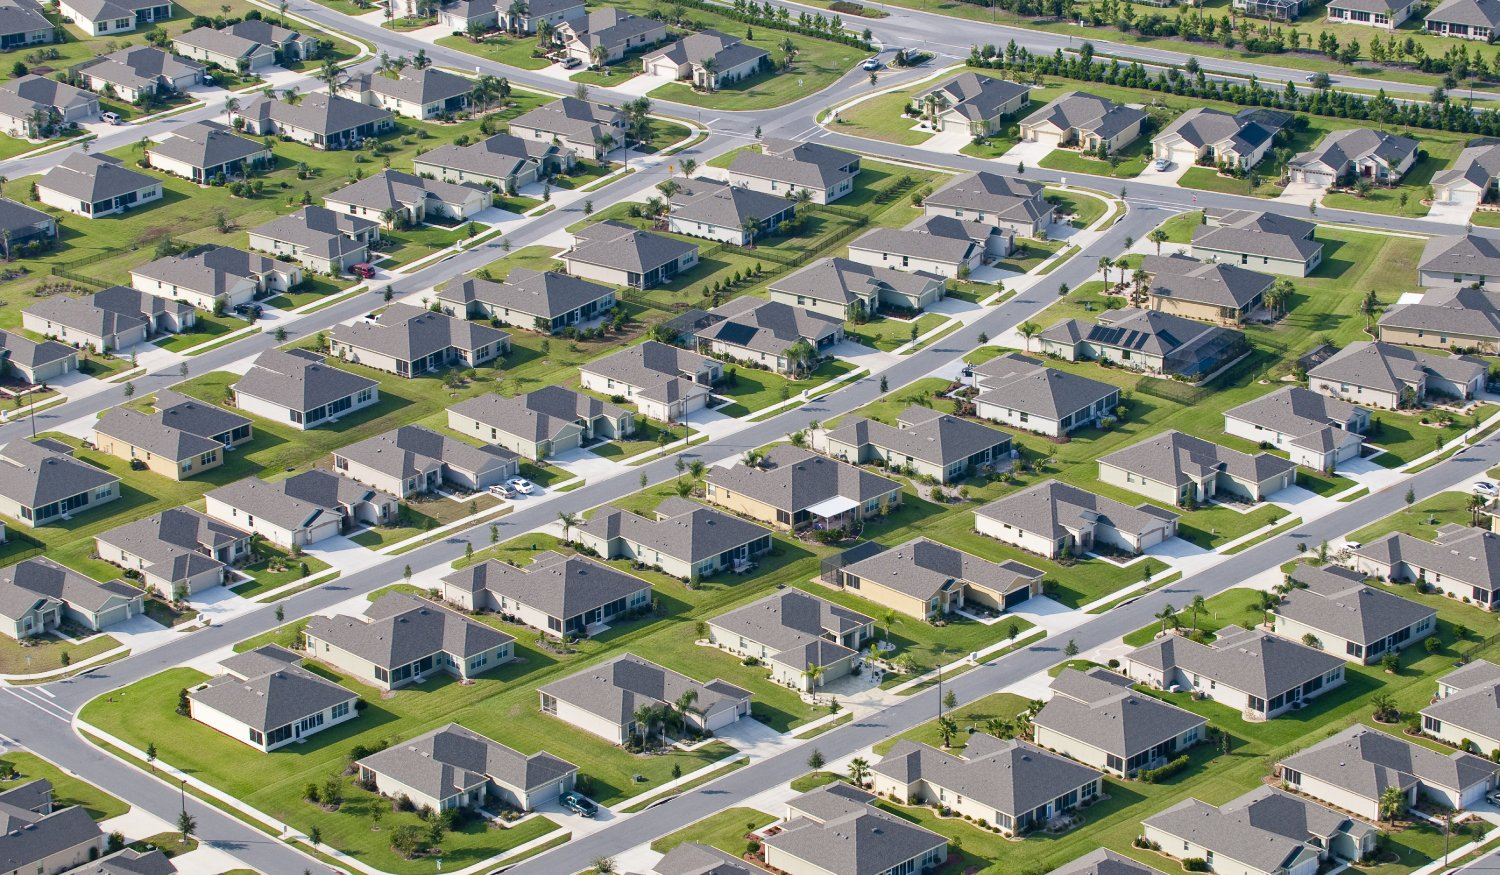 An aerial photo of a large residential development community in Florida